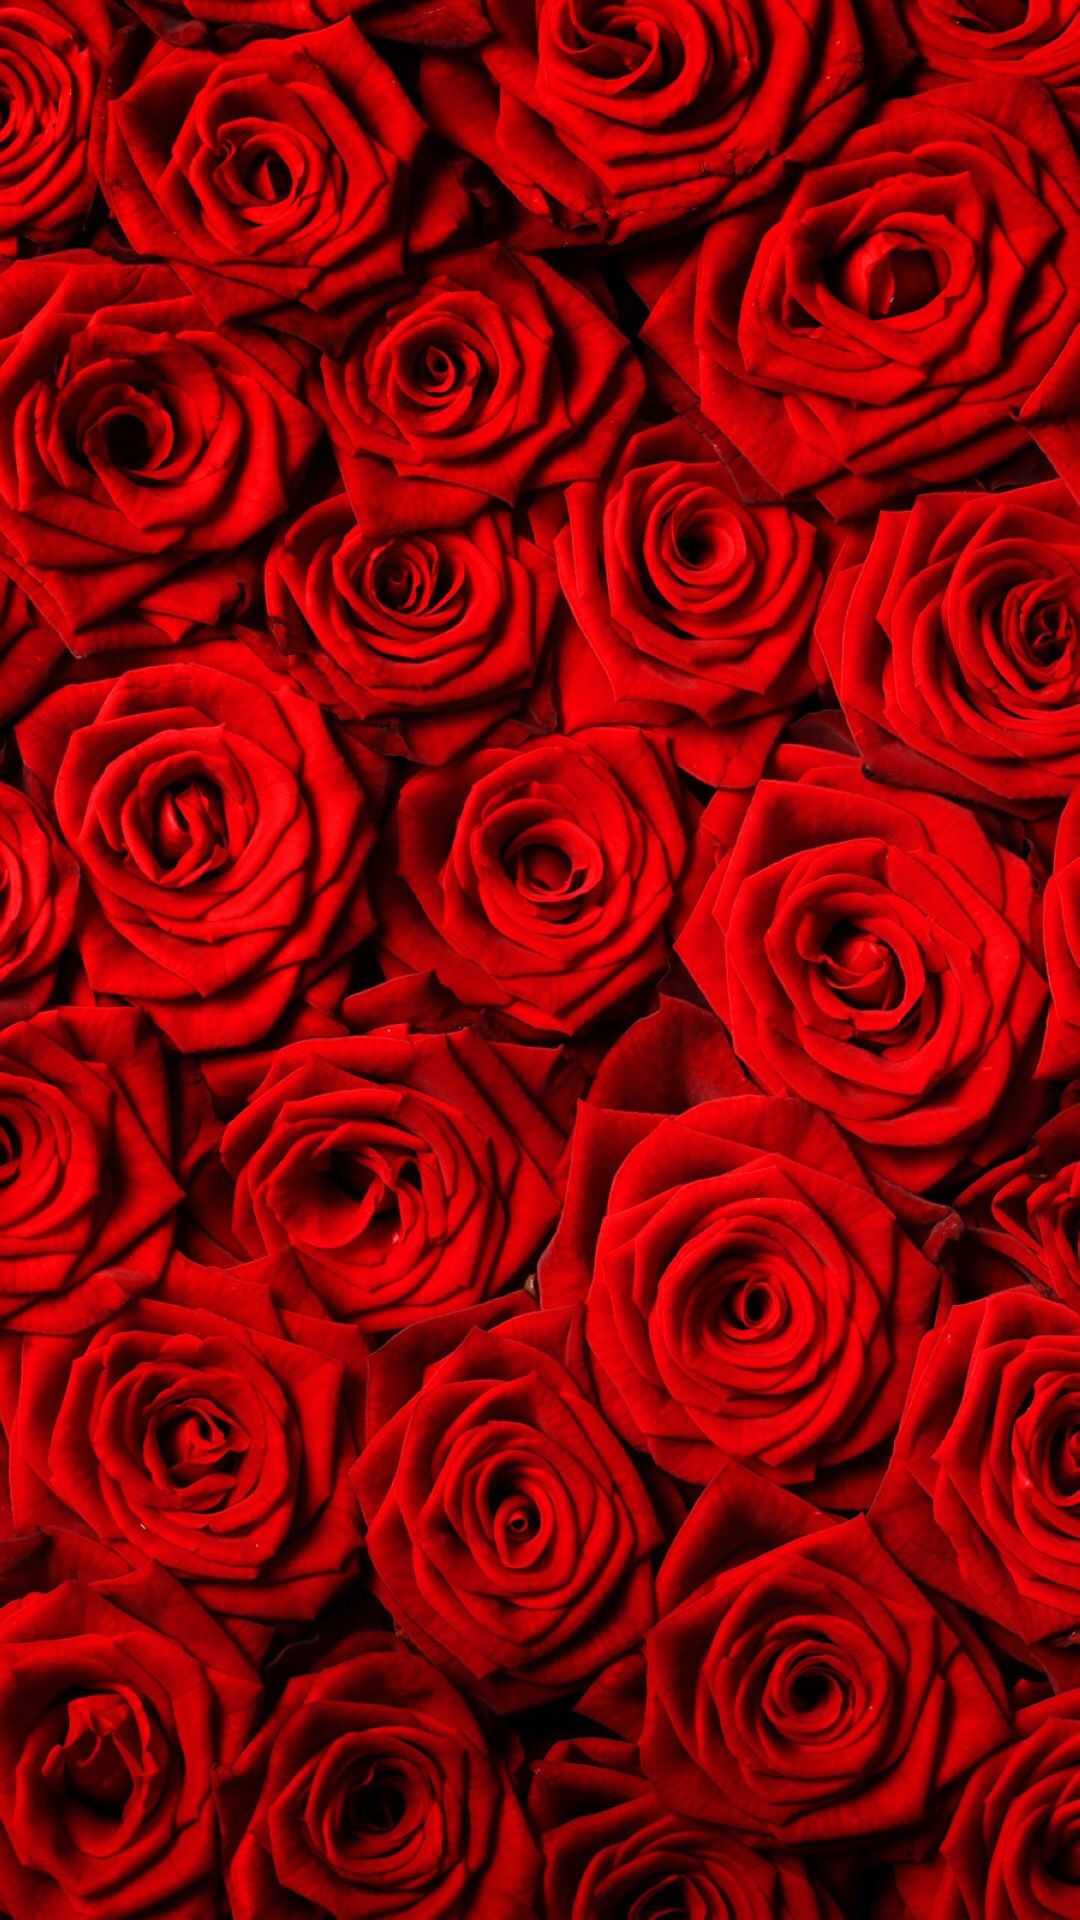 Pin By Selva Zamanzadeh On Roses Wallpaper 1 Red Roses Wallpaper Rose Wallpaper Red Roses